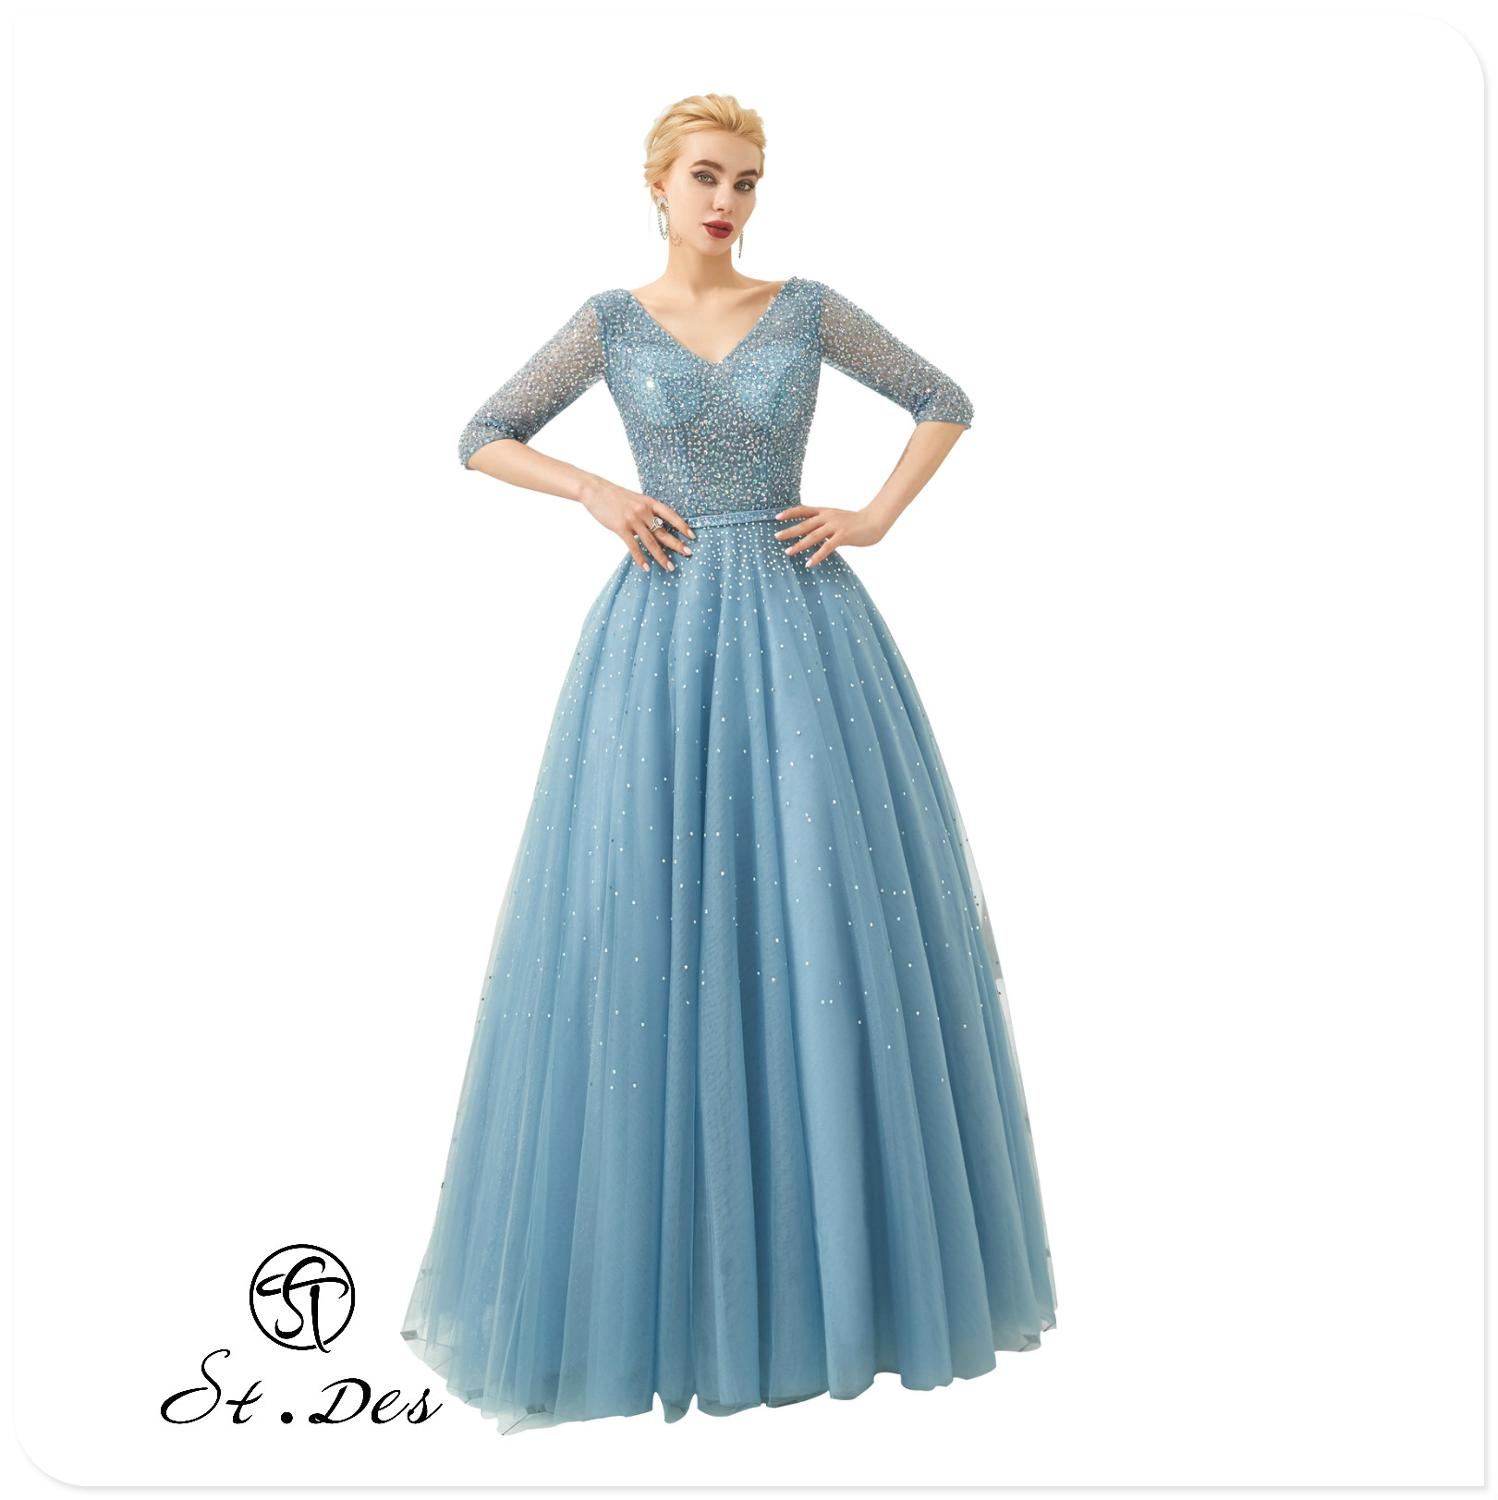 NEW 2020 St.Des A-line V-neck Russian Sky Blue Diamond Sequins Mid-sleeve Designer Floor Length Evening Dress Party Dress